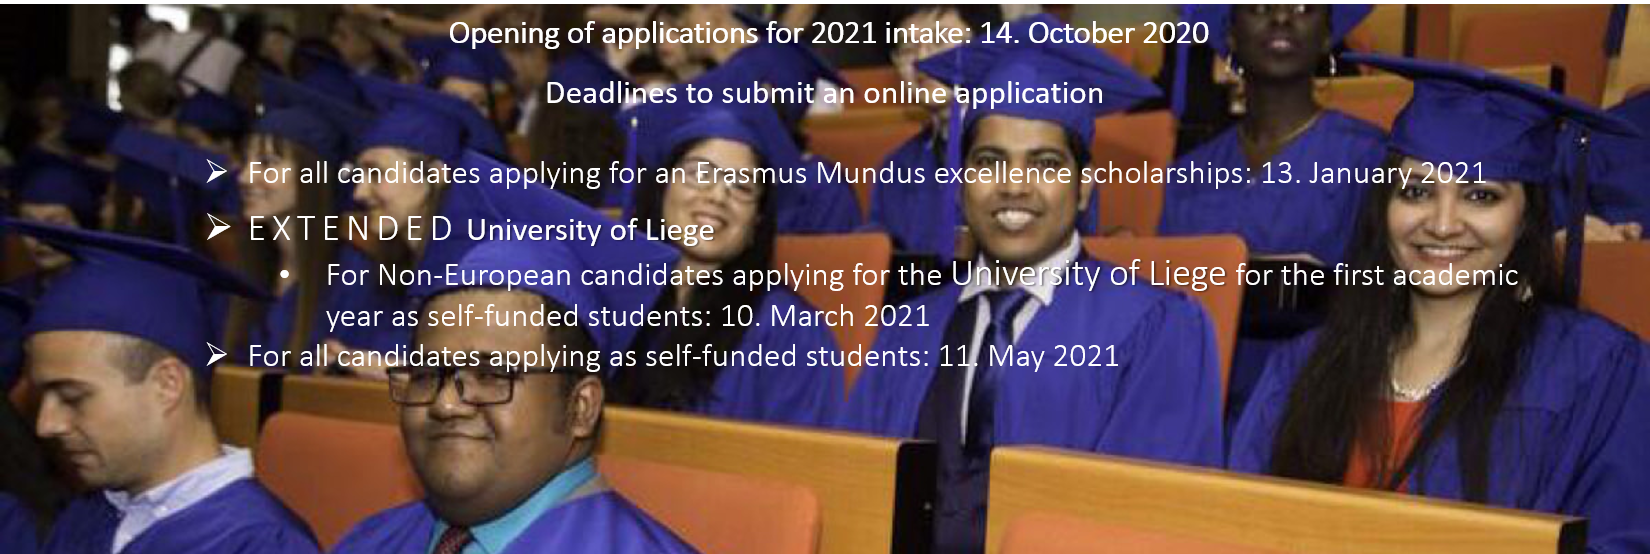 Applications for 2021 Intake